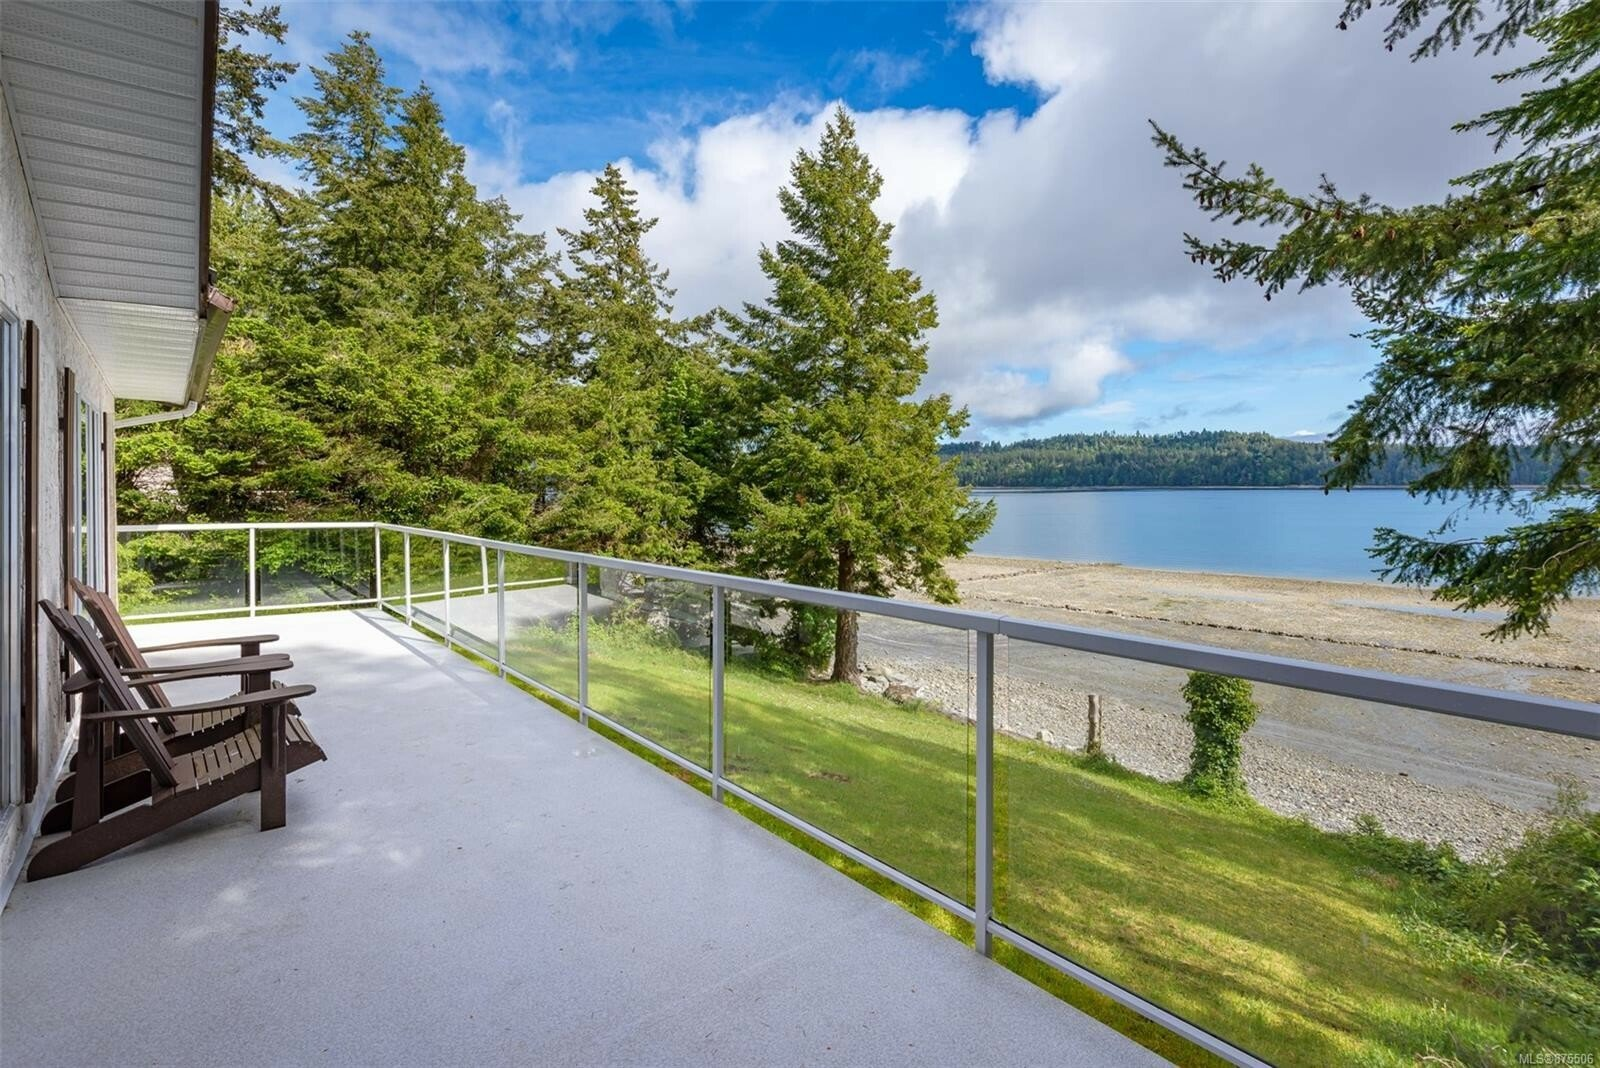 House in Fanny Bay, British Columbia, Canada 1